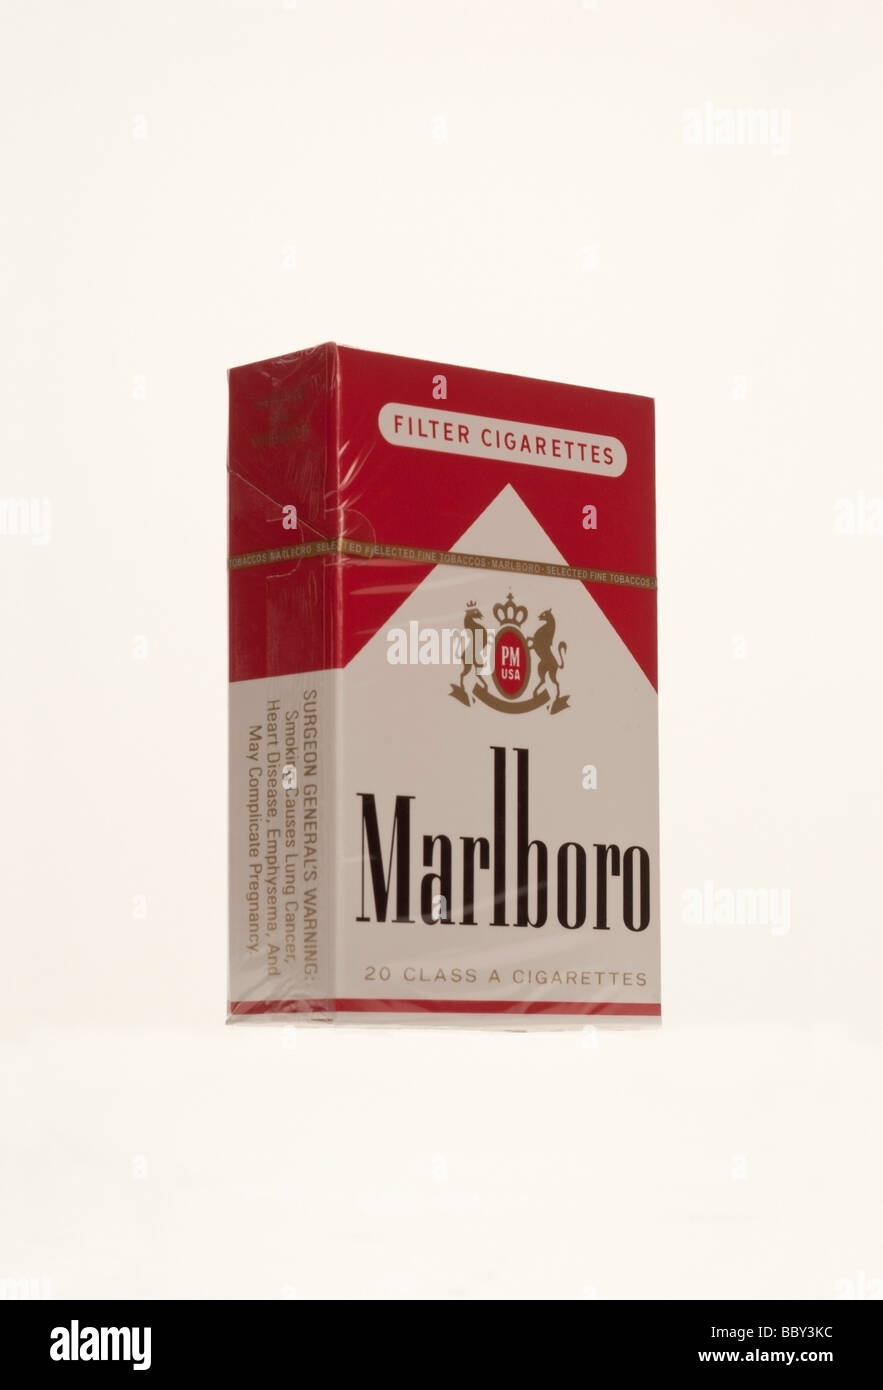 555 cigarettes buy UK